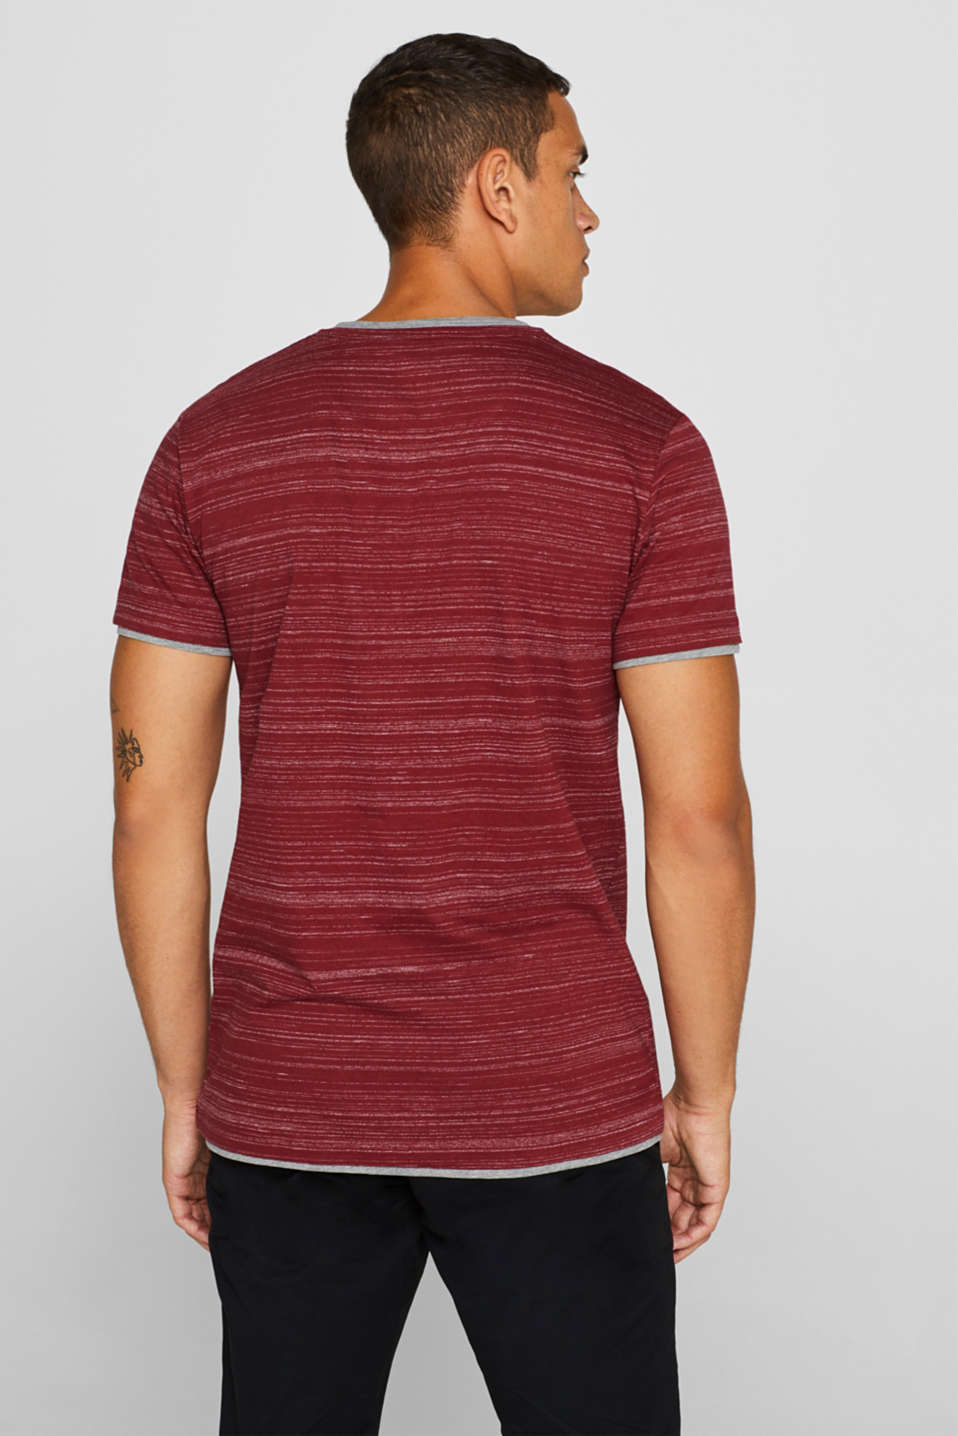 T-shirt with a layered look, made of jersey, BORDEAUX RED, detail image number 3